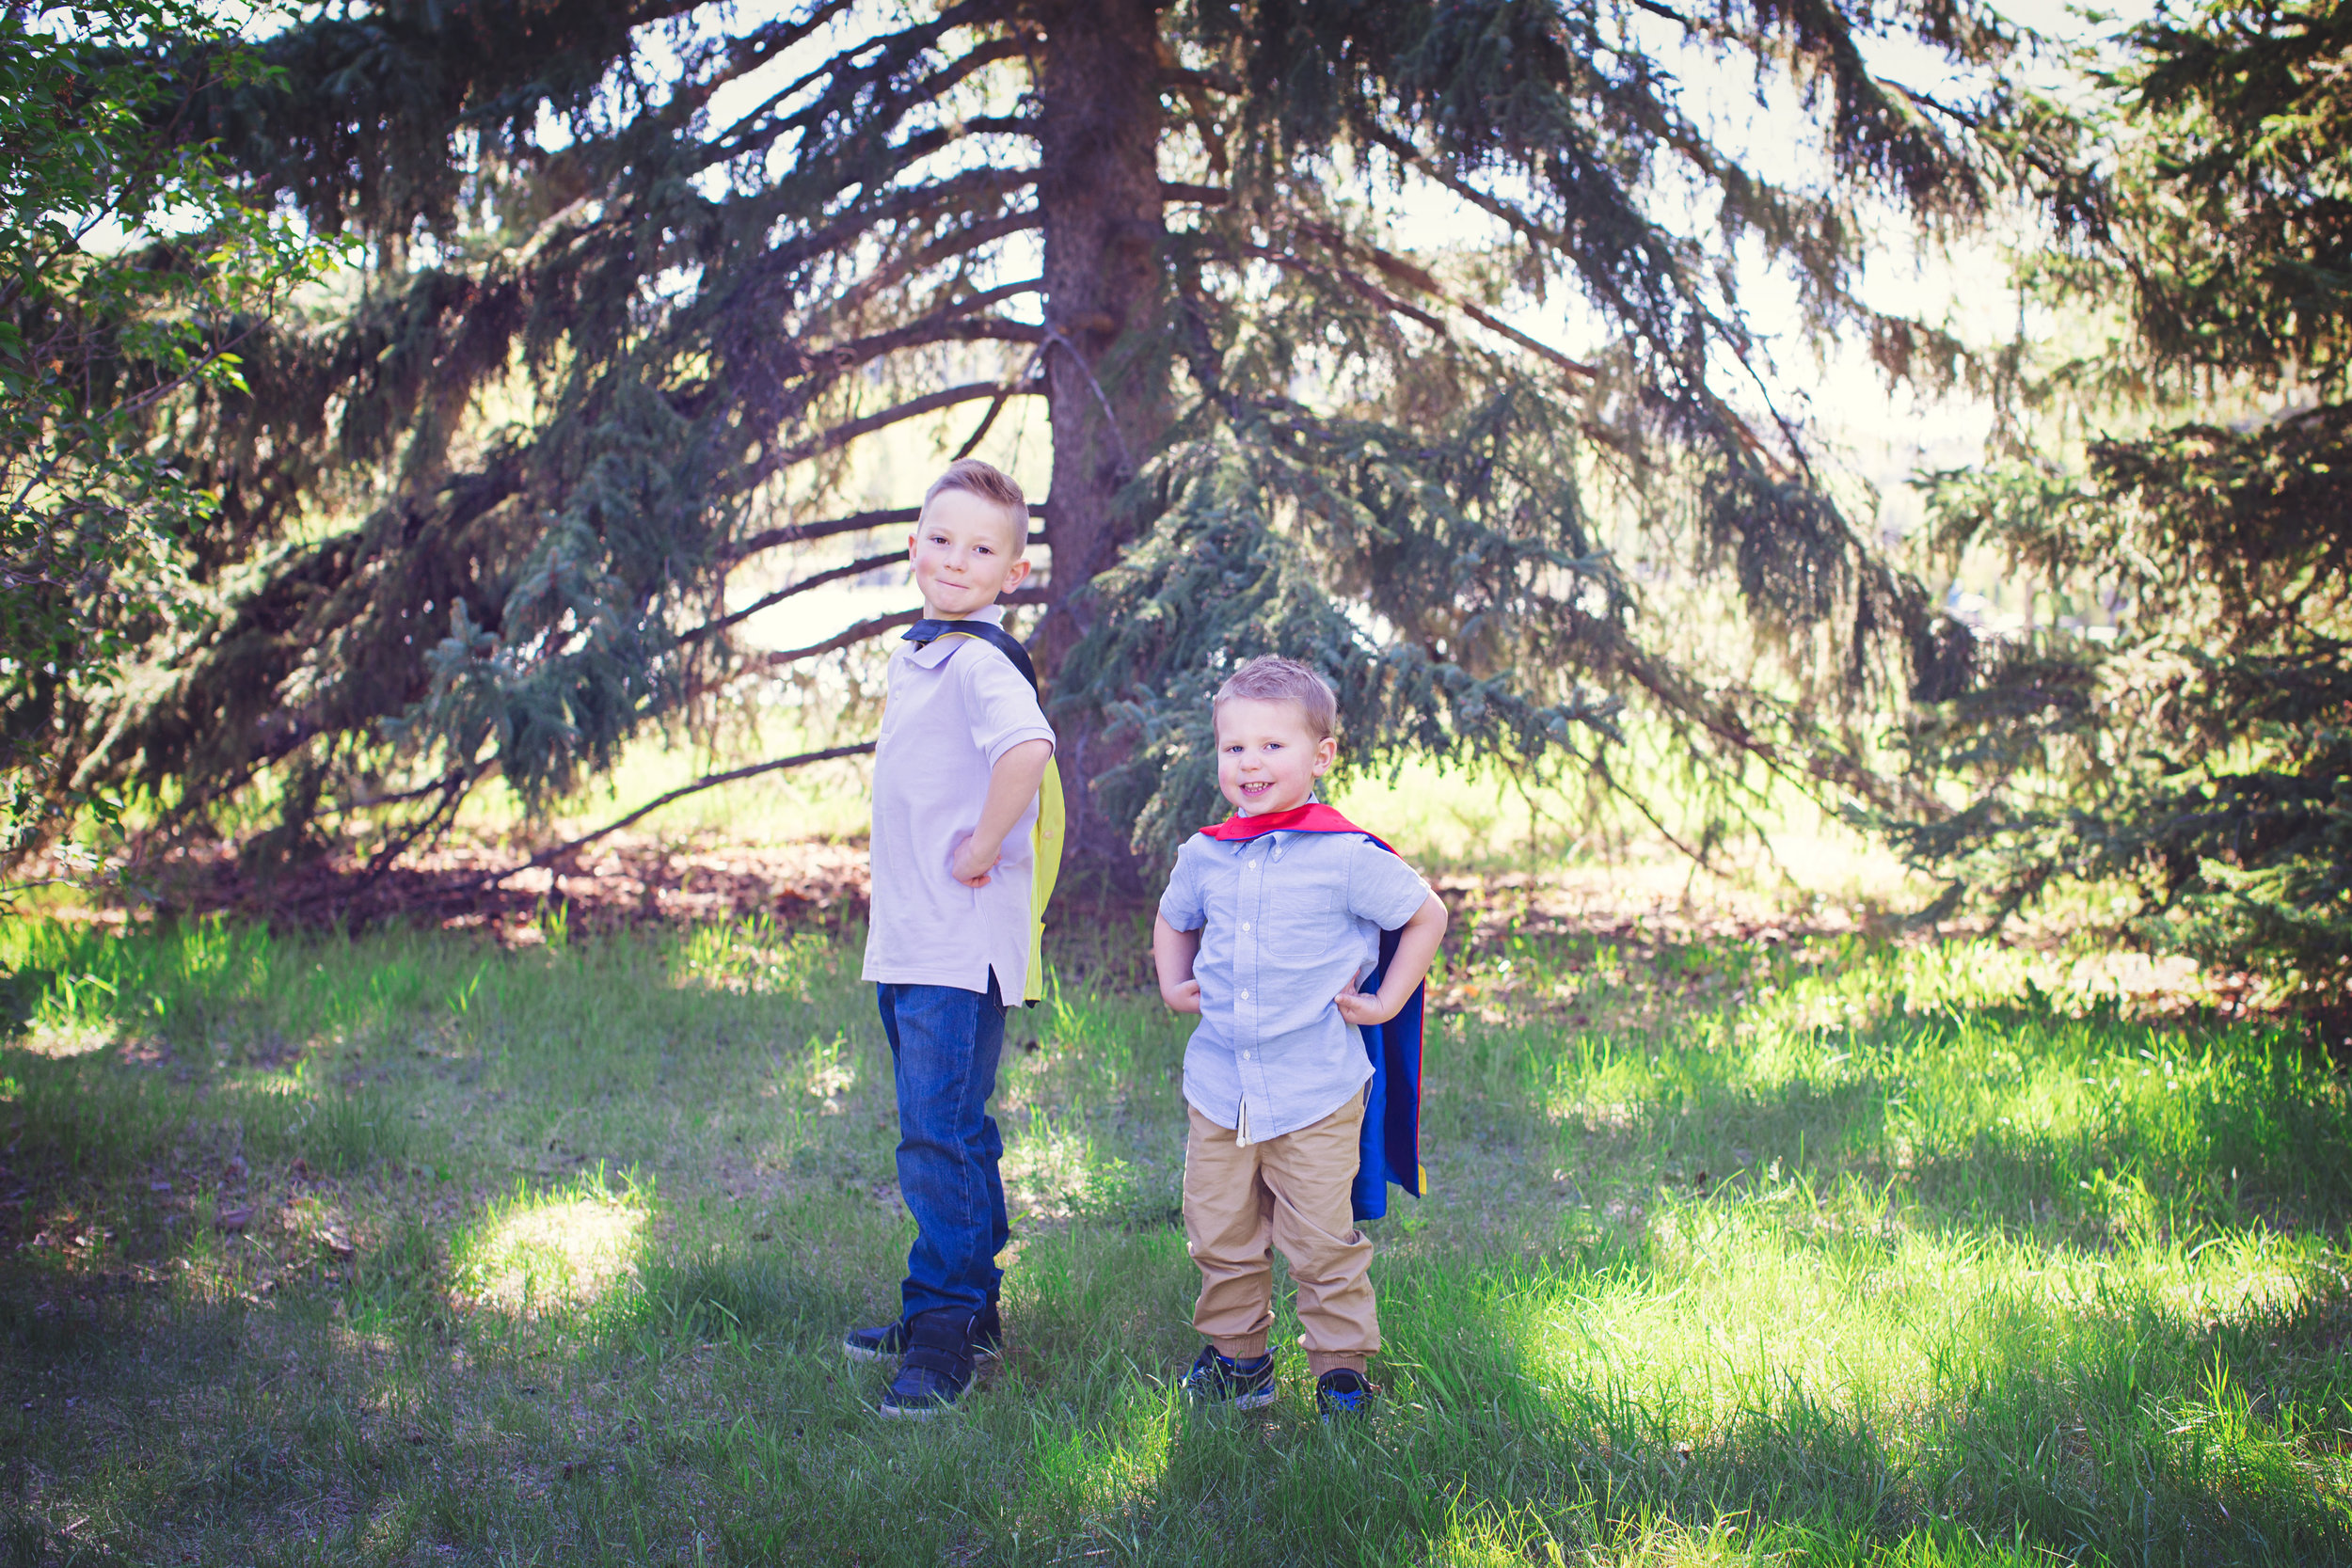 Brothers wearing superhero capes and posing. Baker's park. Calgary family photographer. Milashka Photography